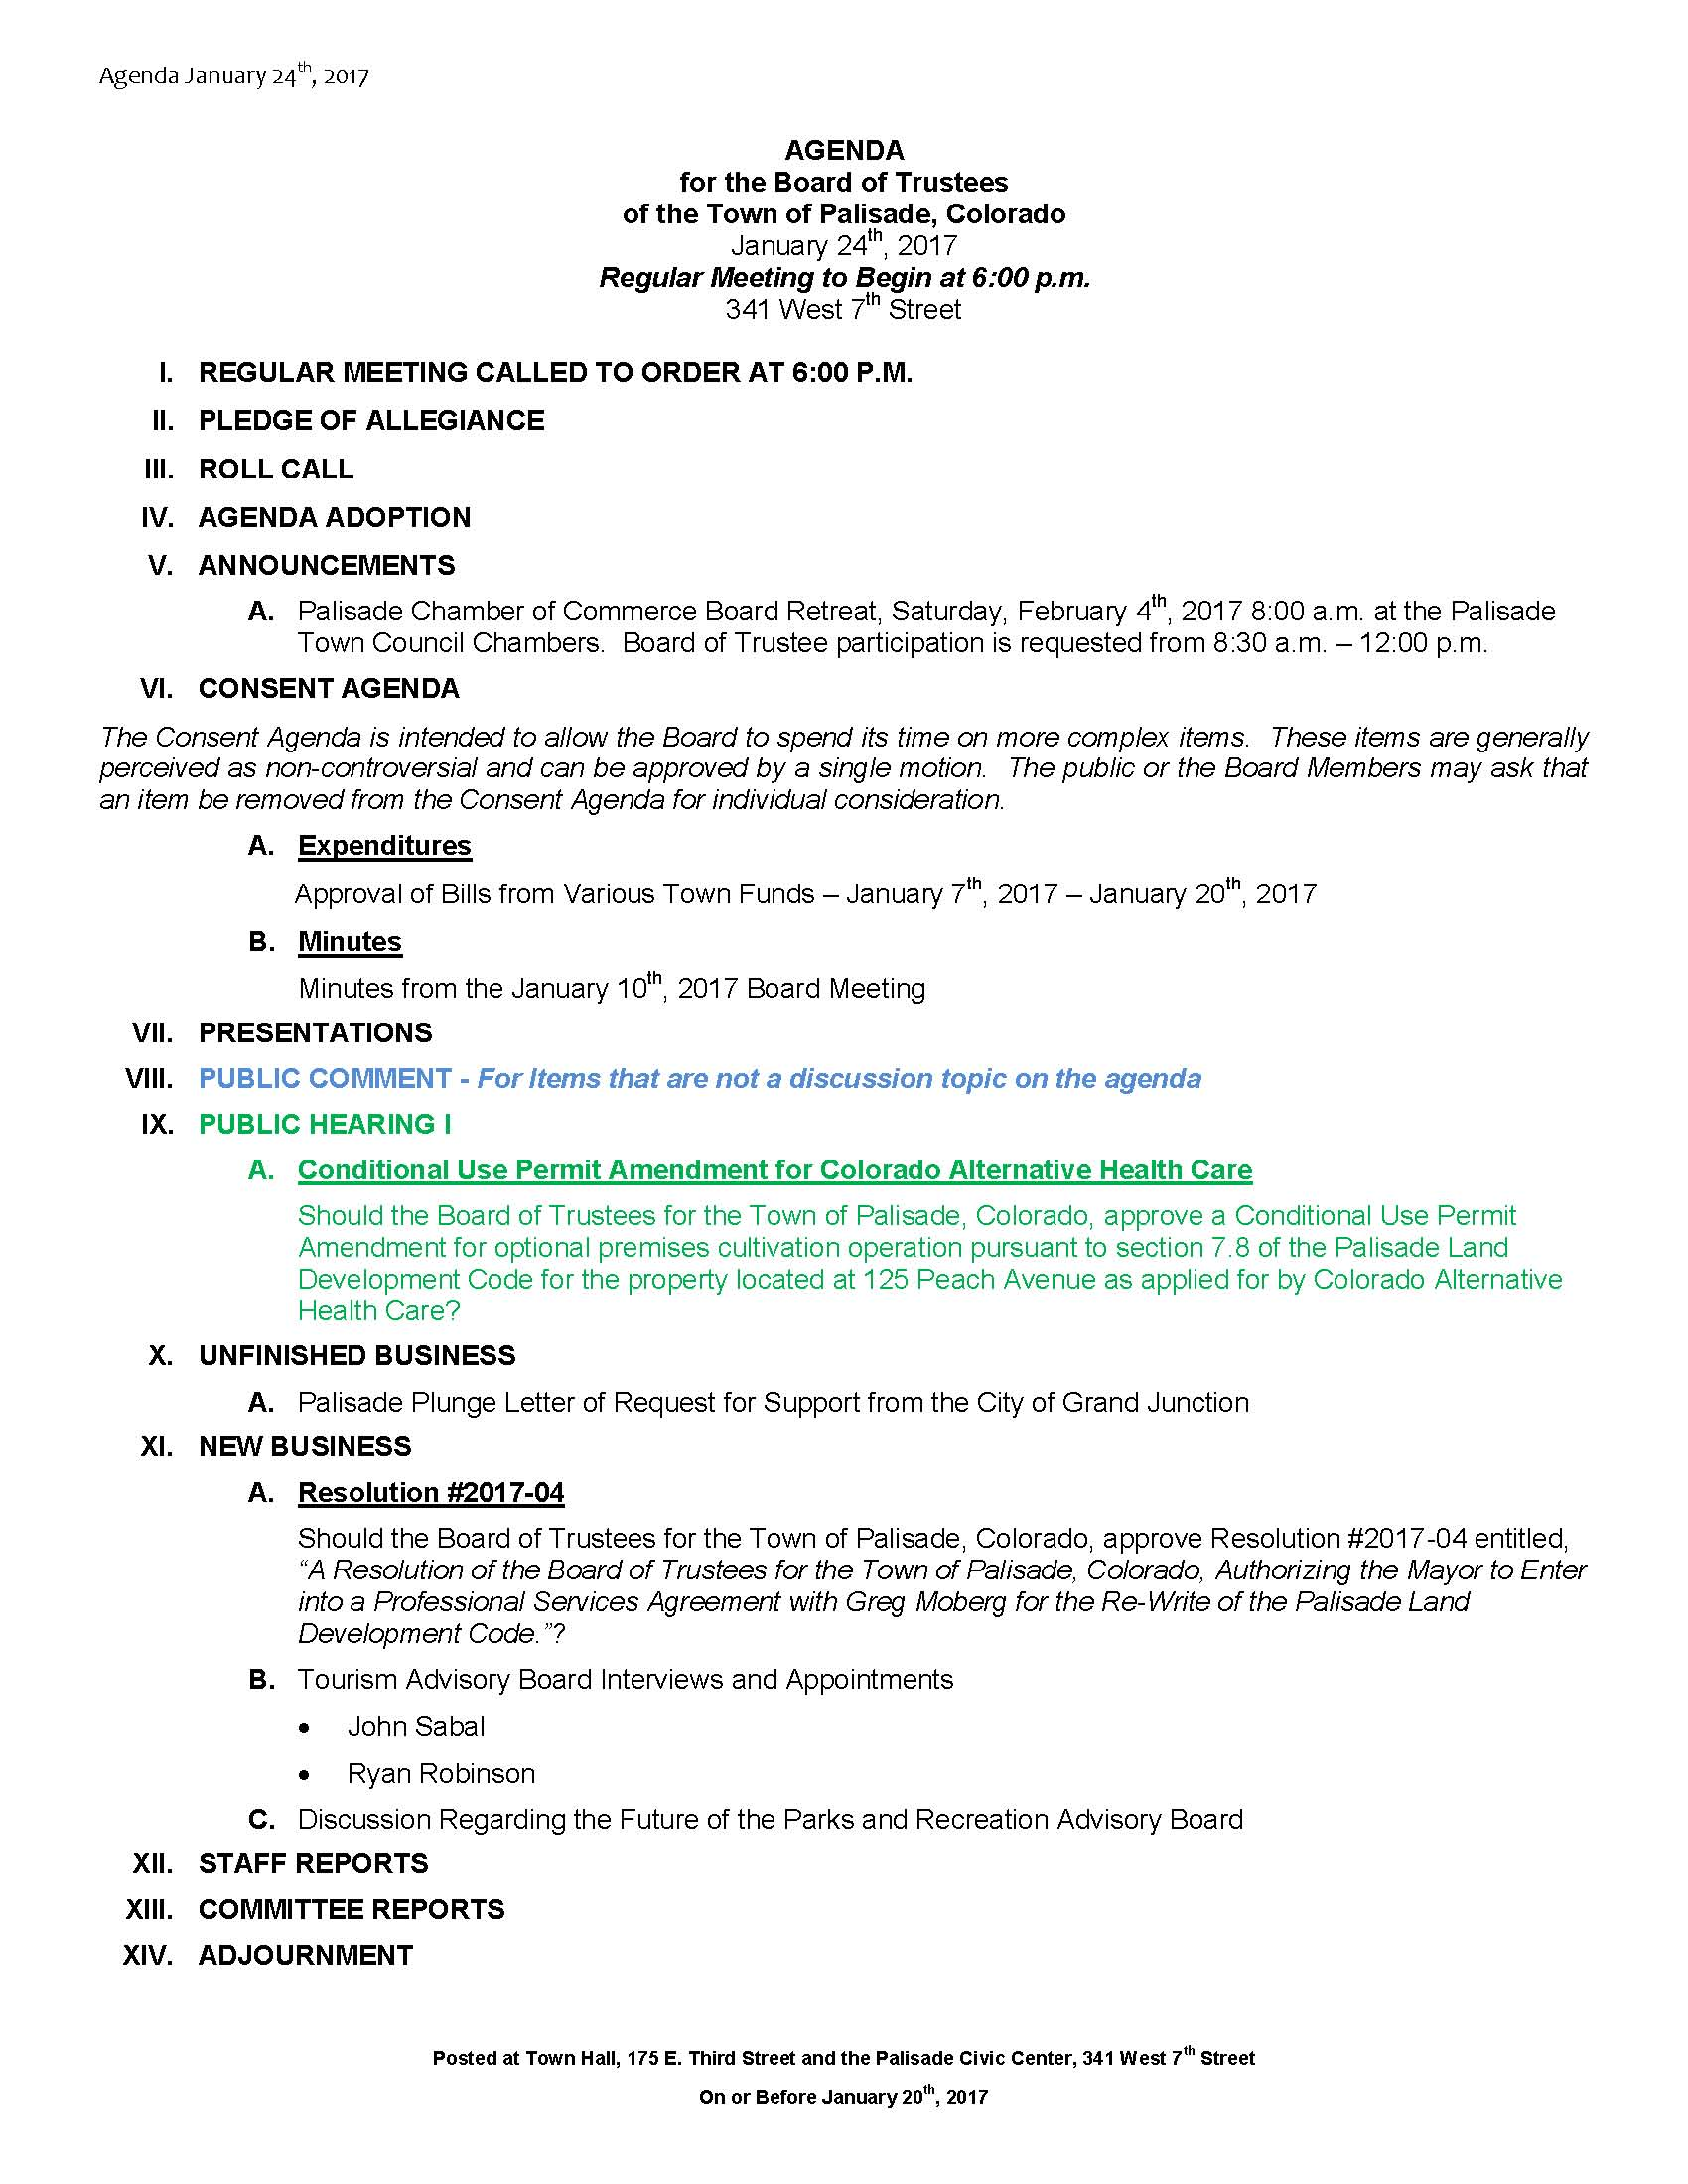 January 24th 2017 Board Meeting Agenda